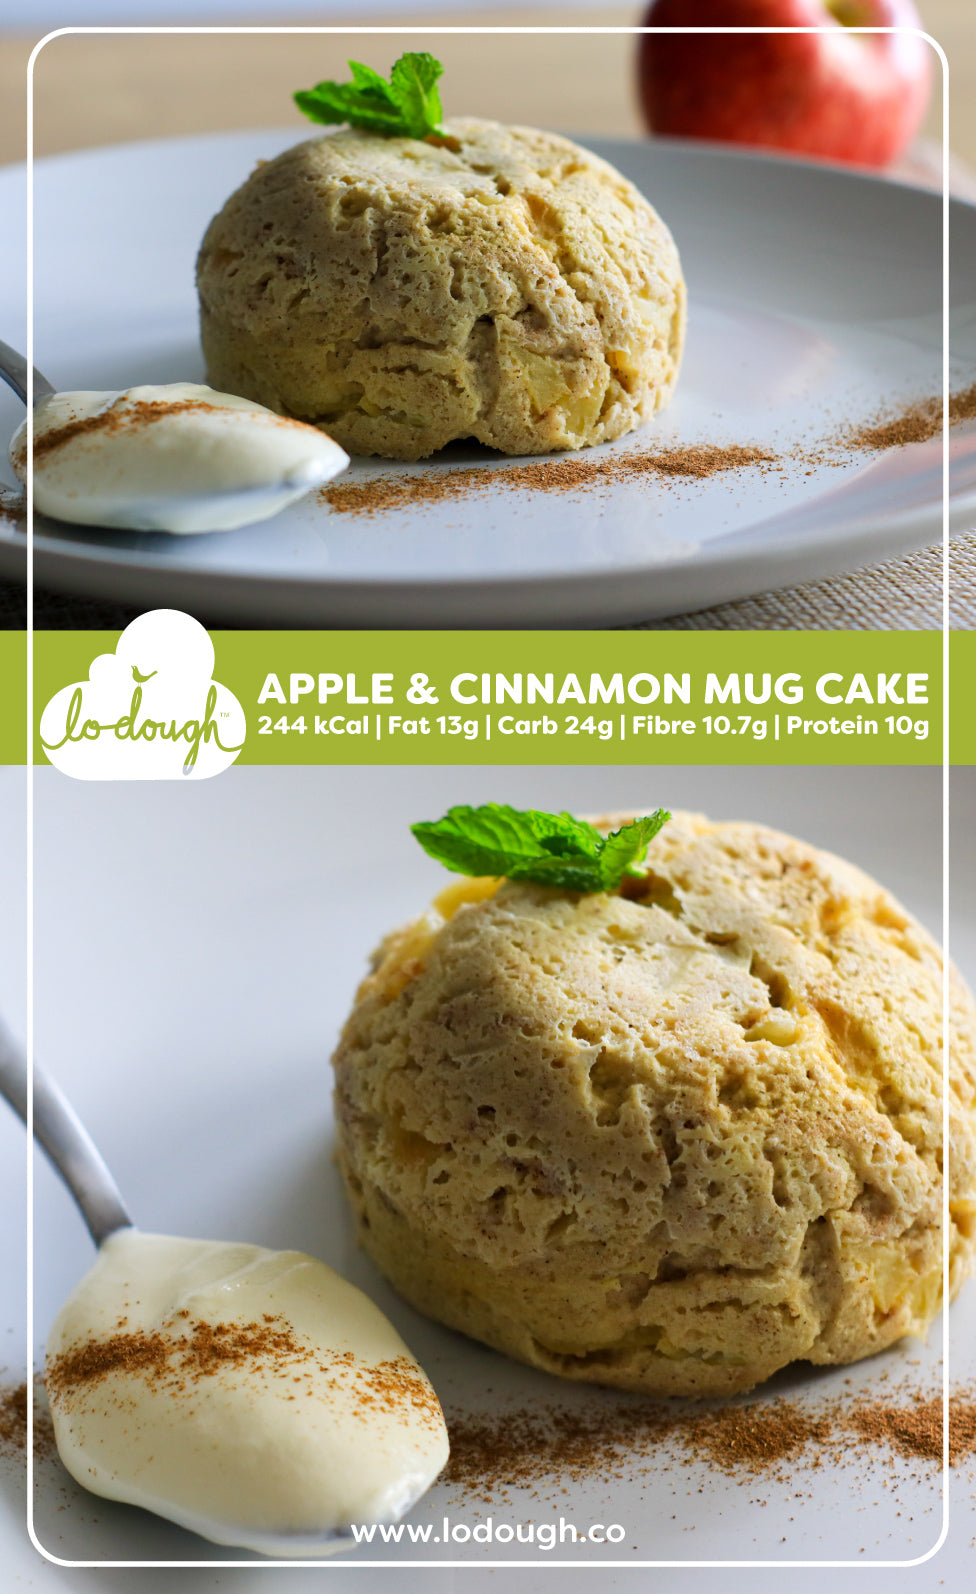 Apple and Cinnamon Mug Cakes